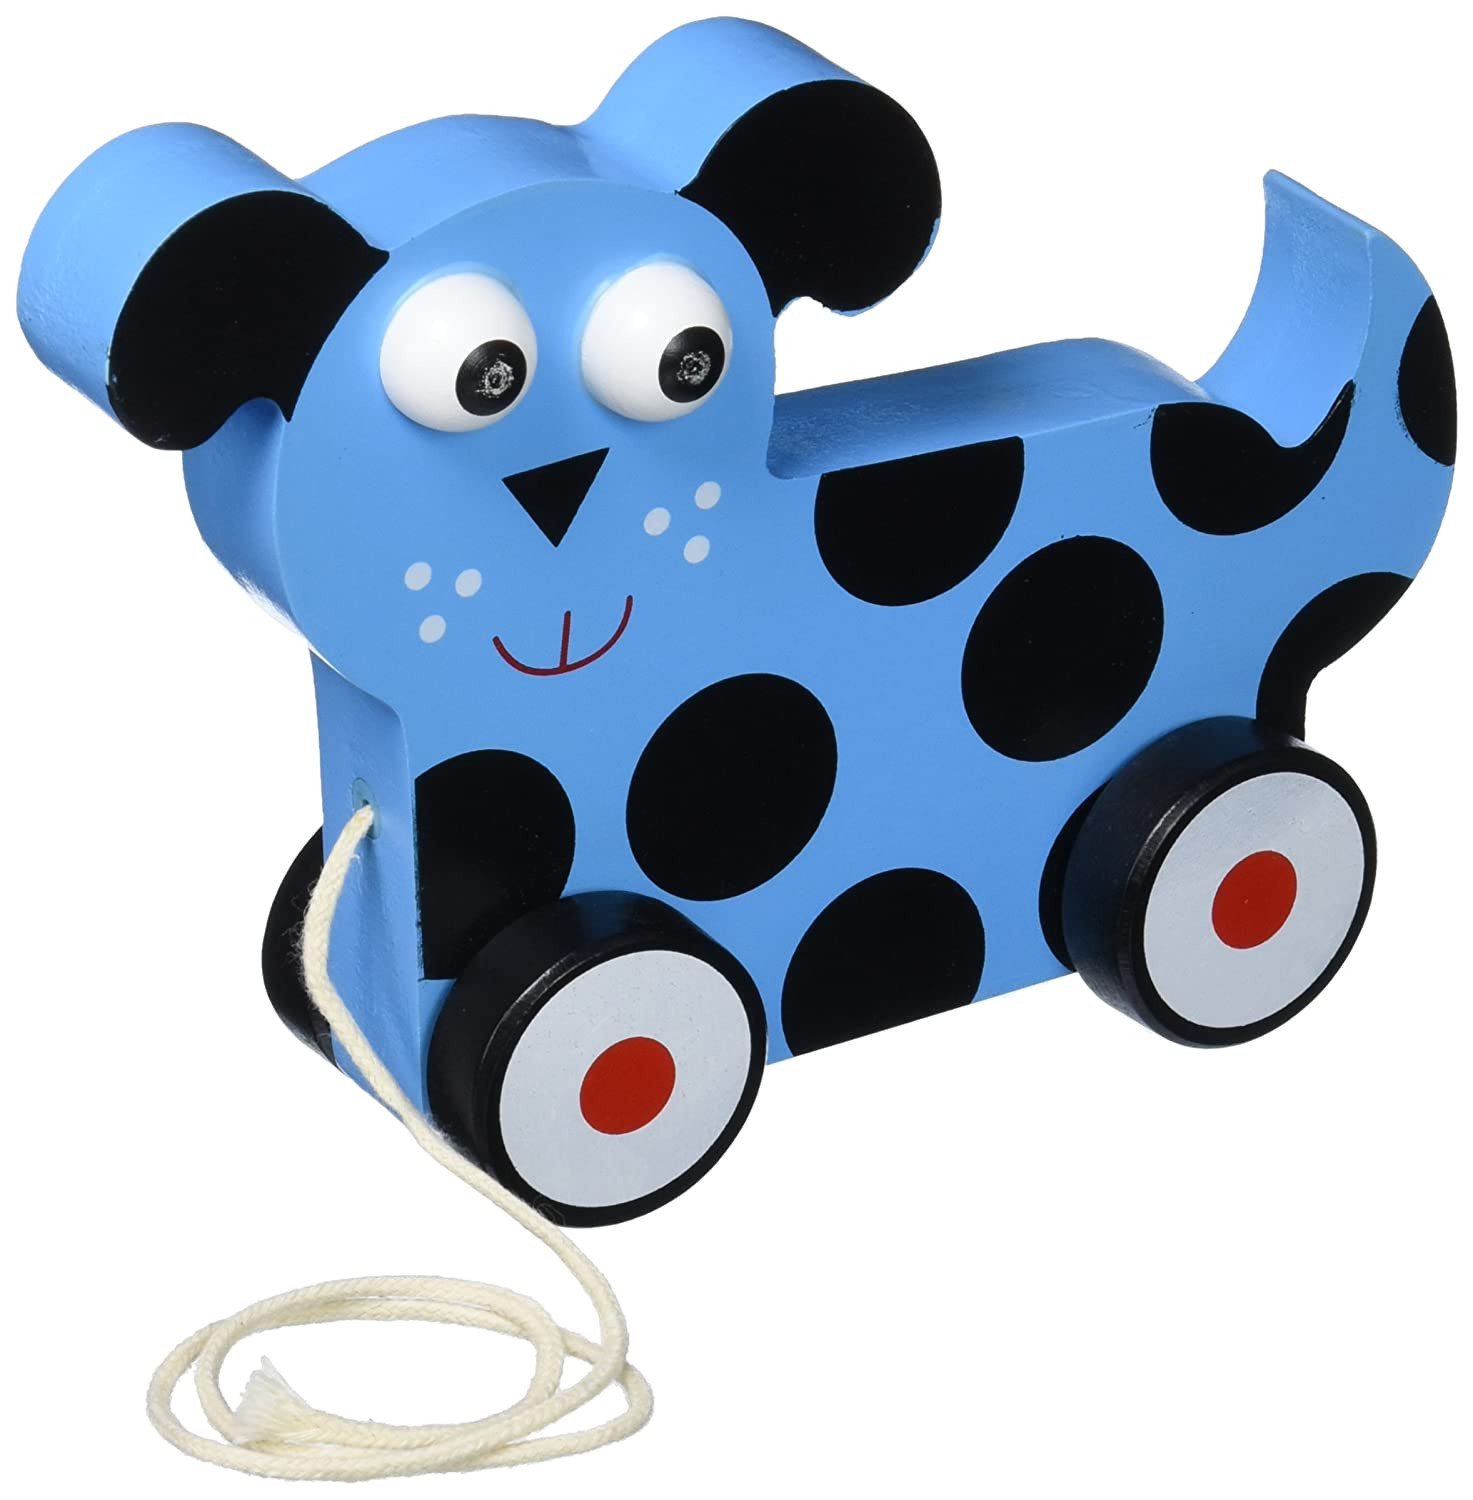 Imagination Generation Wooden Wonders Push n Pull Dalmatian Puppy Toy